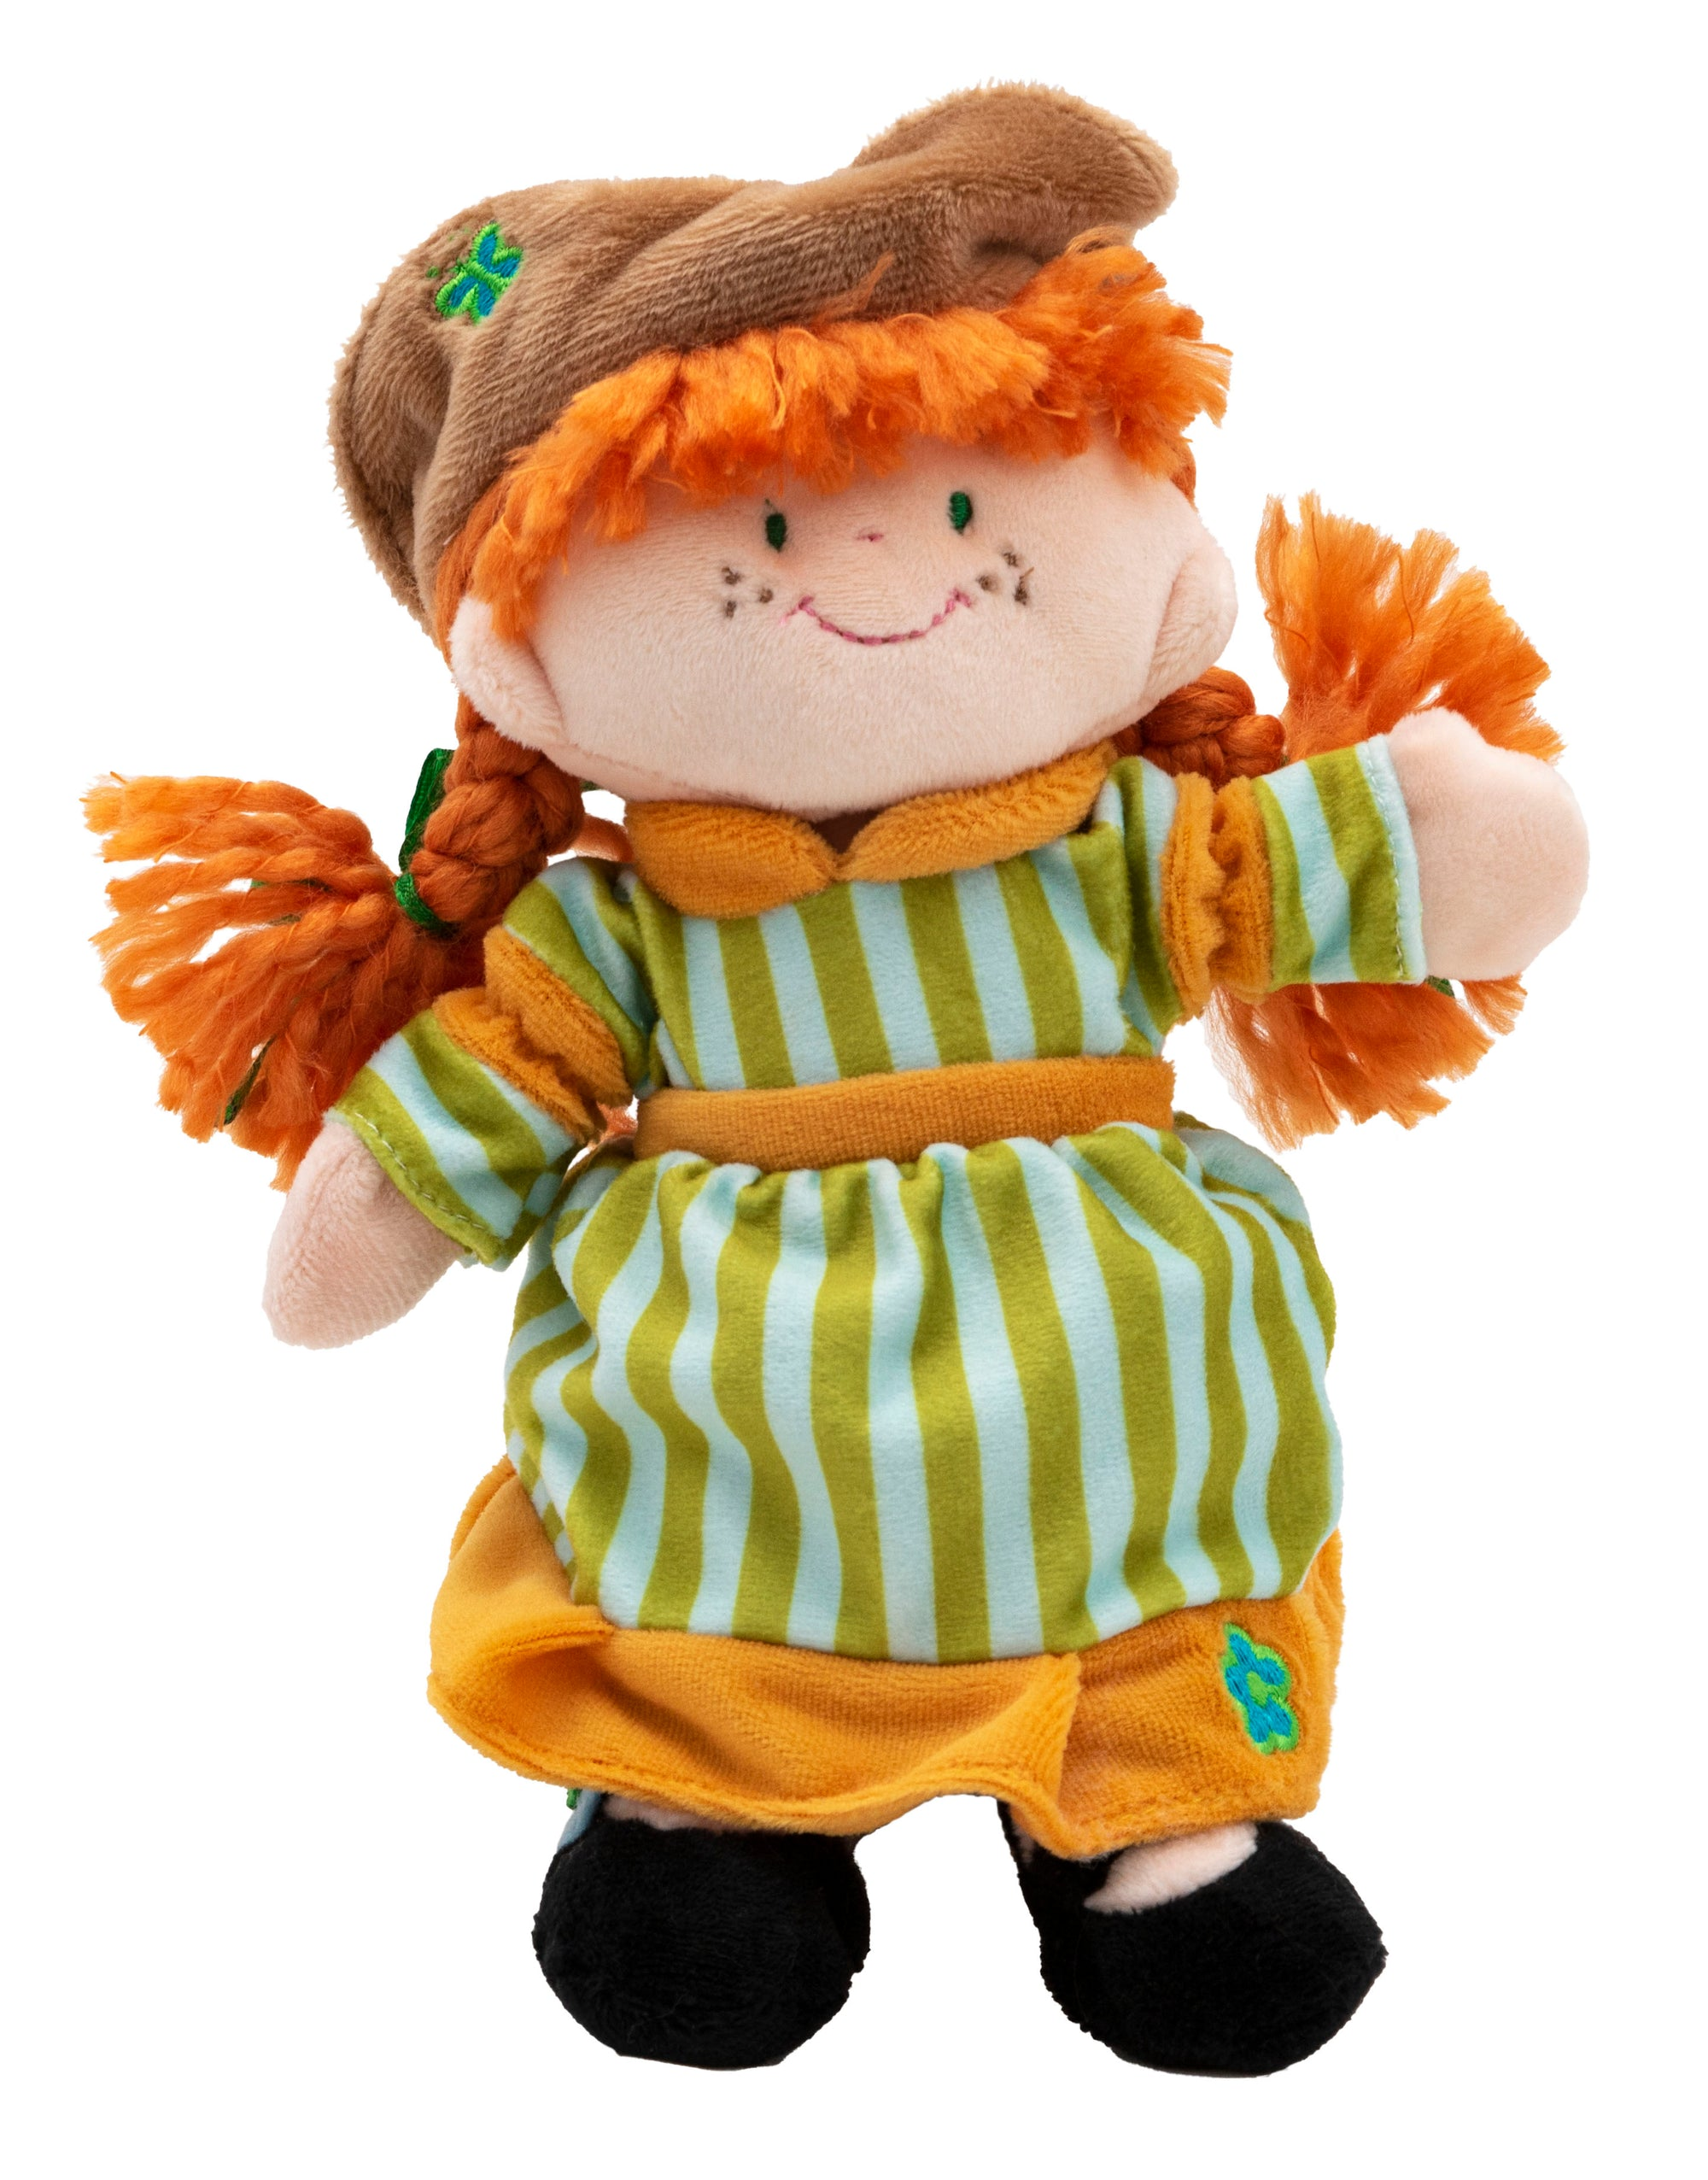 Anne of Green Gables 12 inch Plush Doll